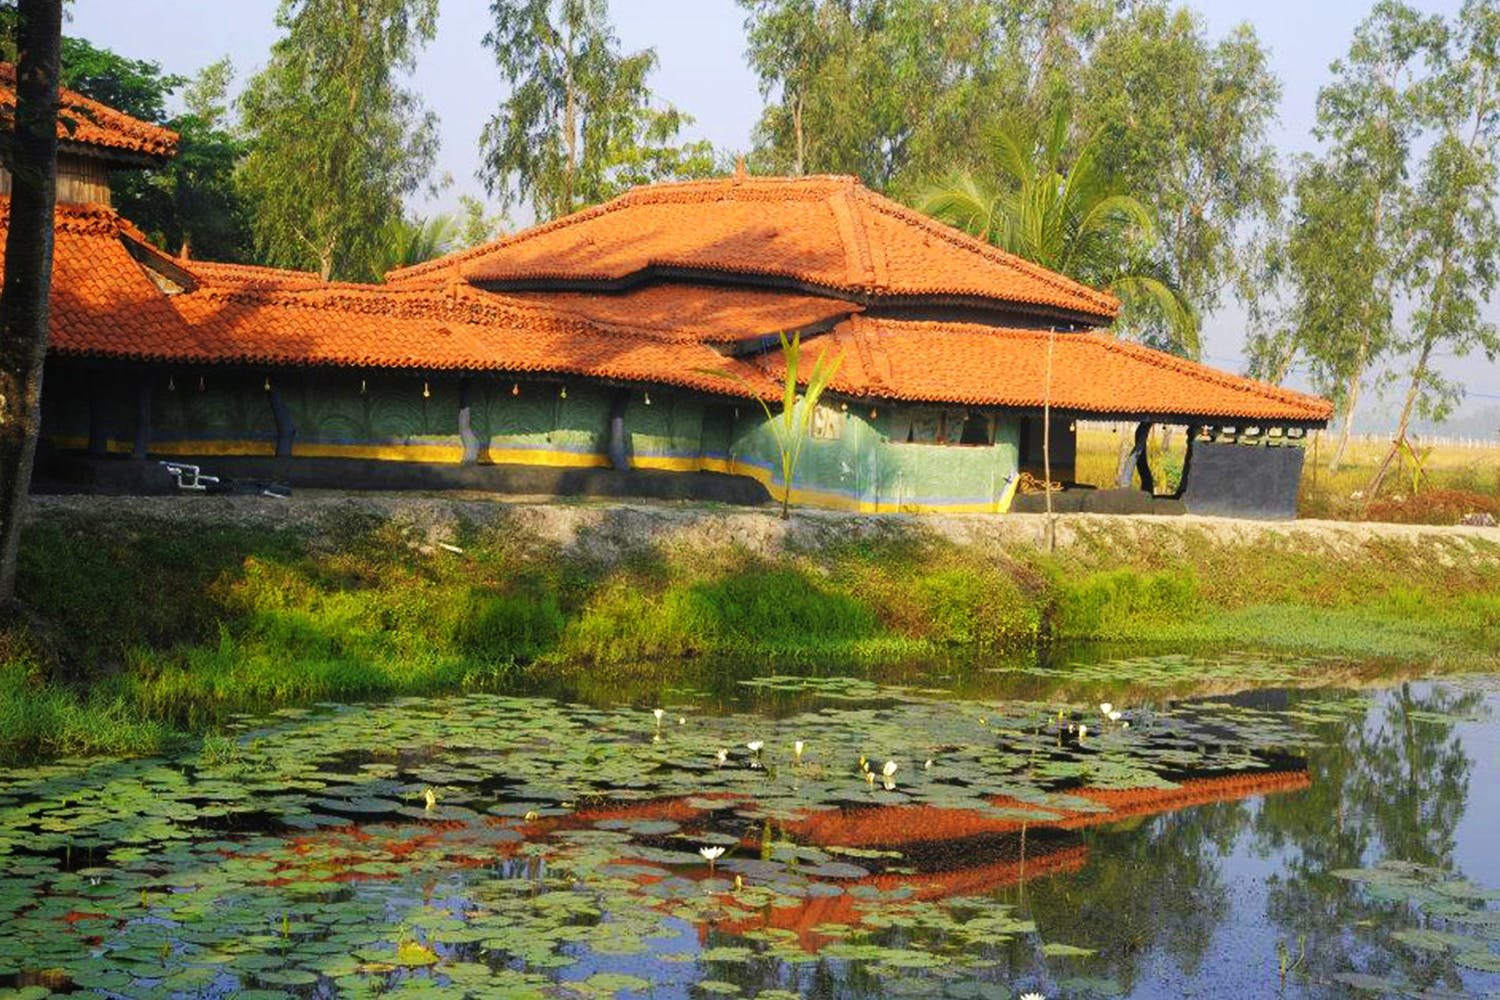 Best Hotel To Stay In Sundarban-Tora Eco Resort and Life Experience Center